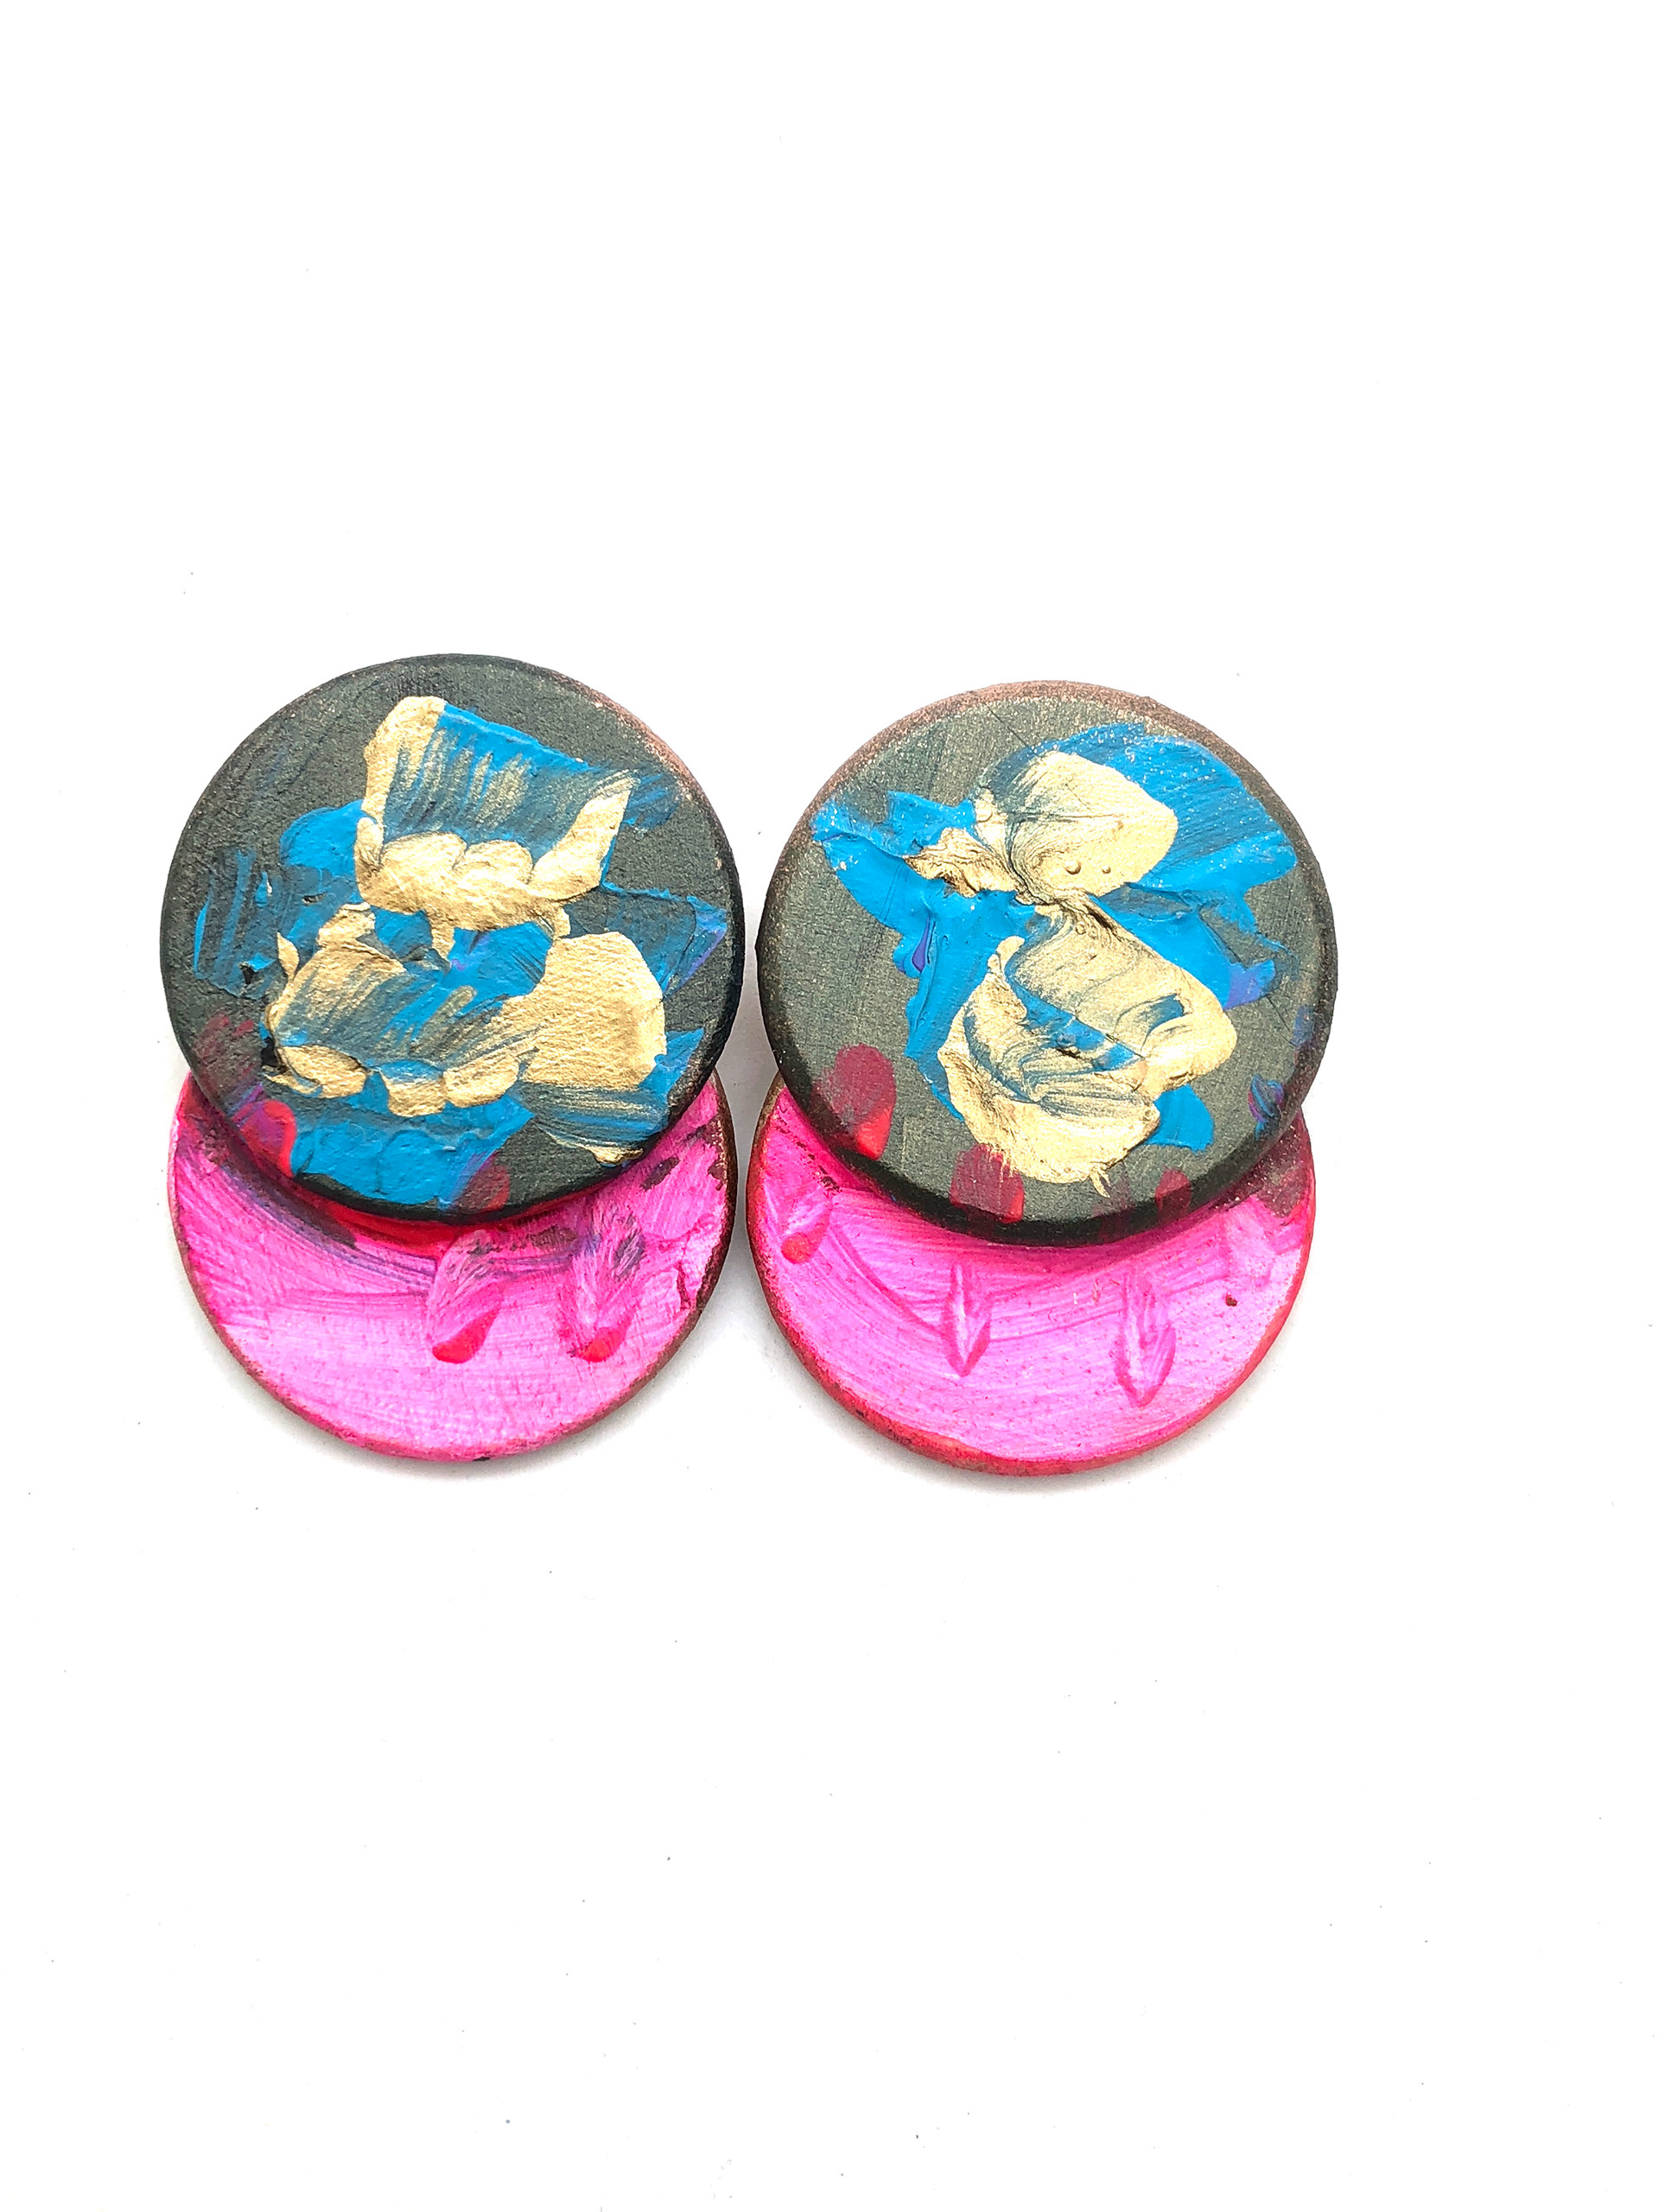 disk for jewelry turquoise two painted hand earrings product min joy